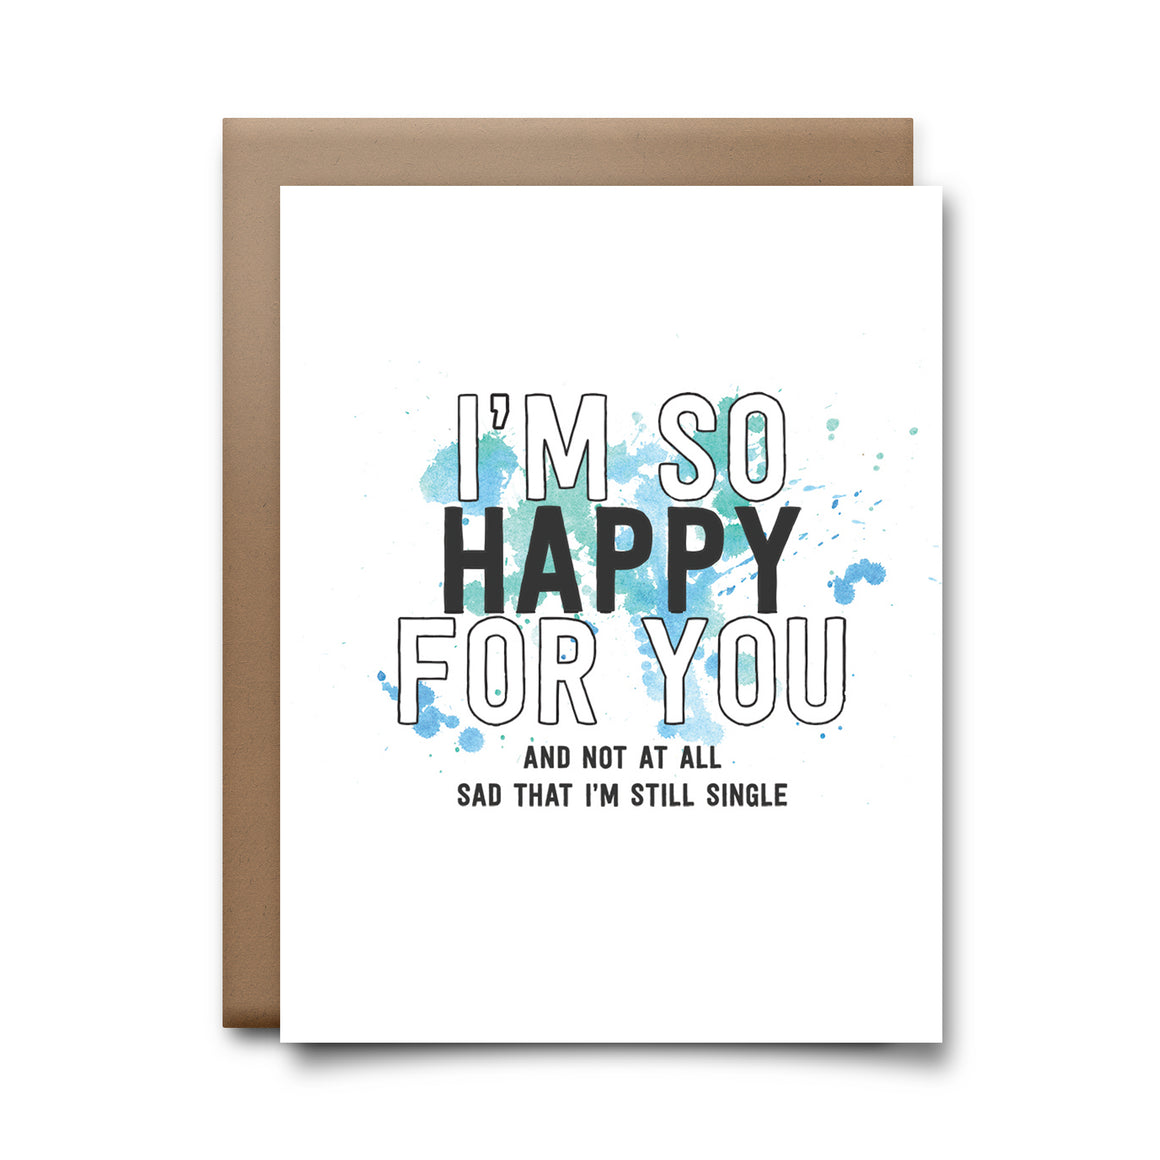 i'm still single | greeting card